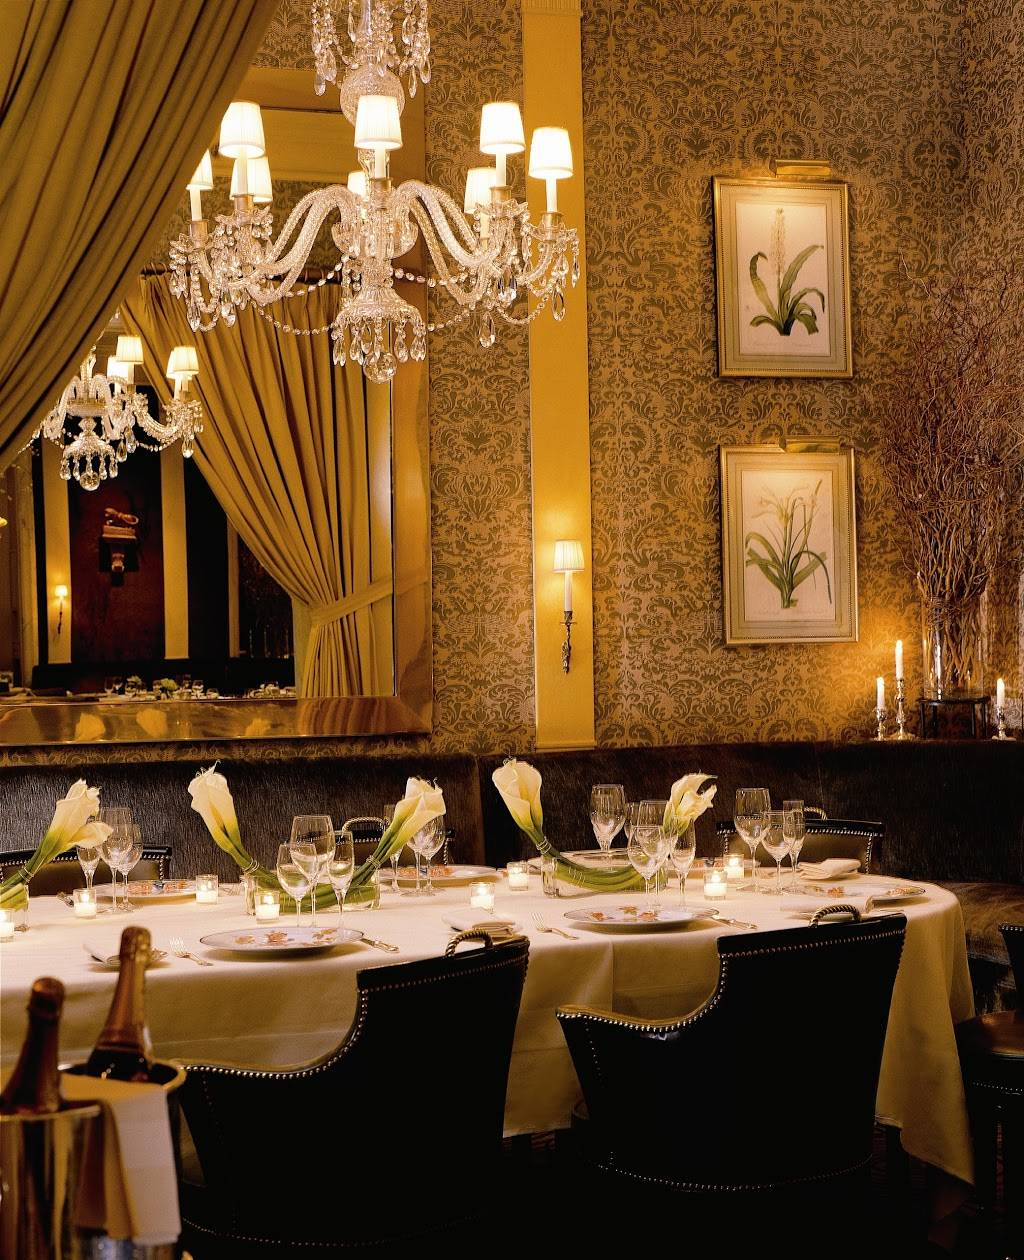 The Carlyle Restaurant | restaurant | 35 E 76th St, New York, NY 10021, USA | 2127441600 OR +1 212-744-1600